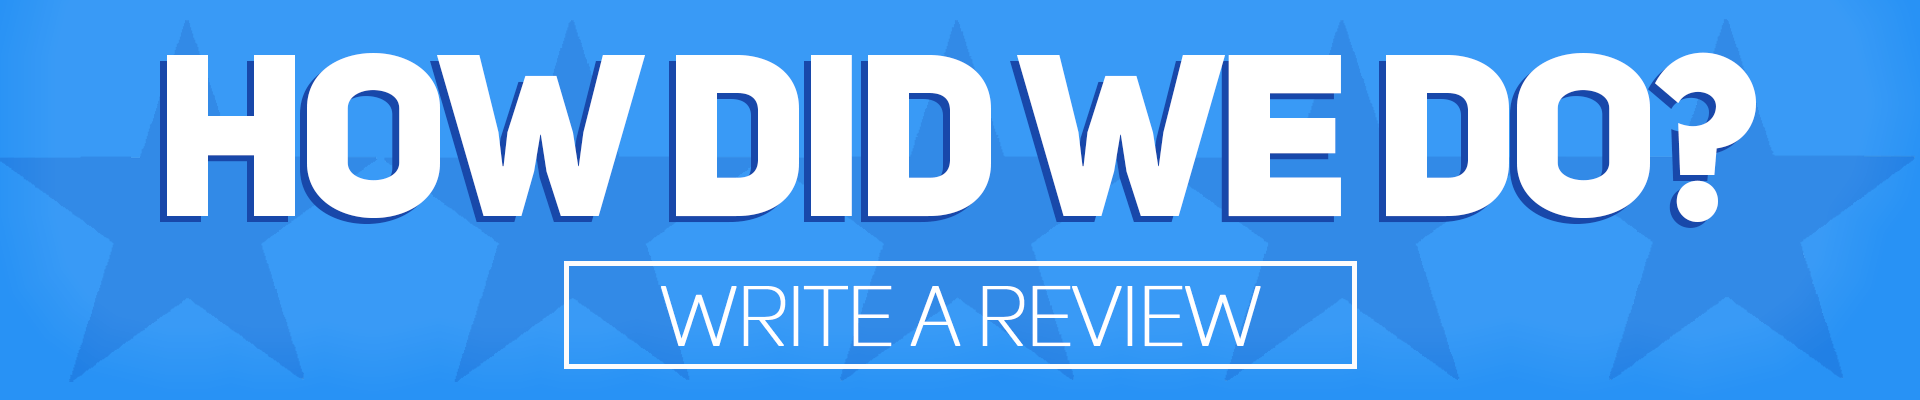 Write us a review!